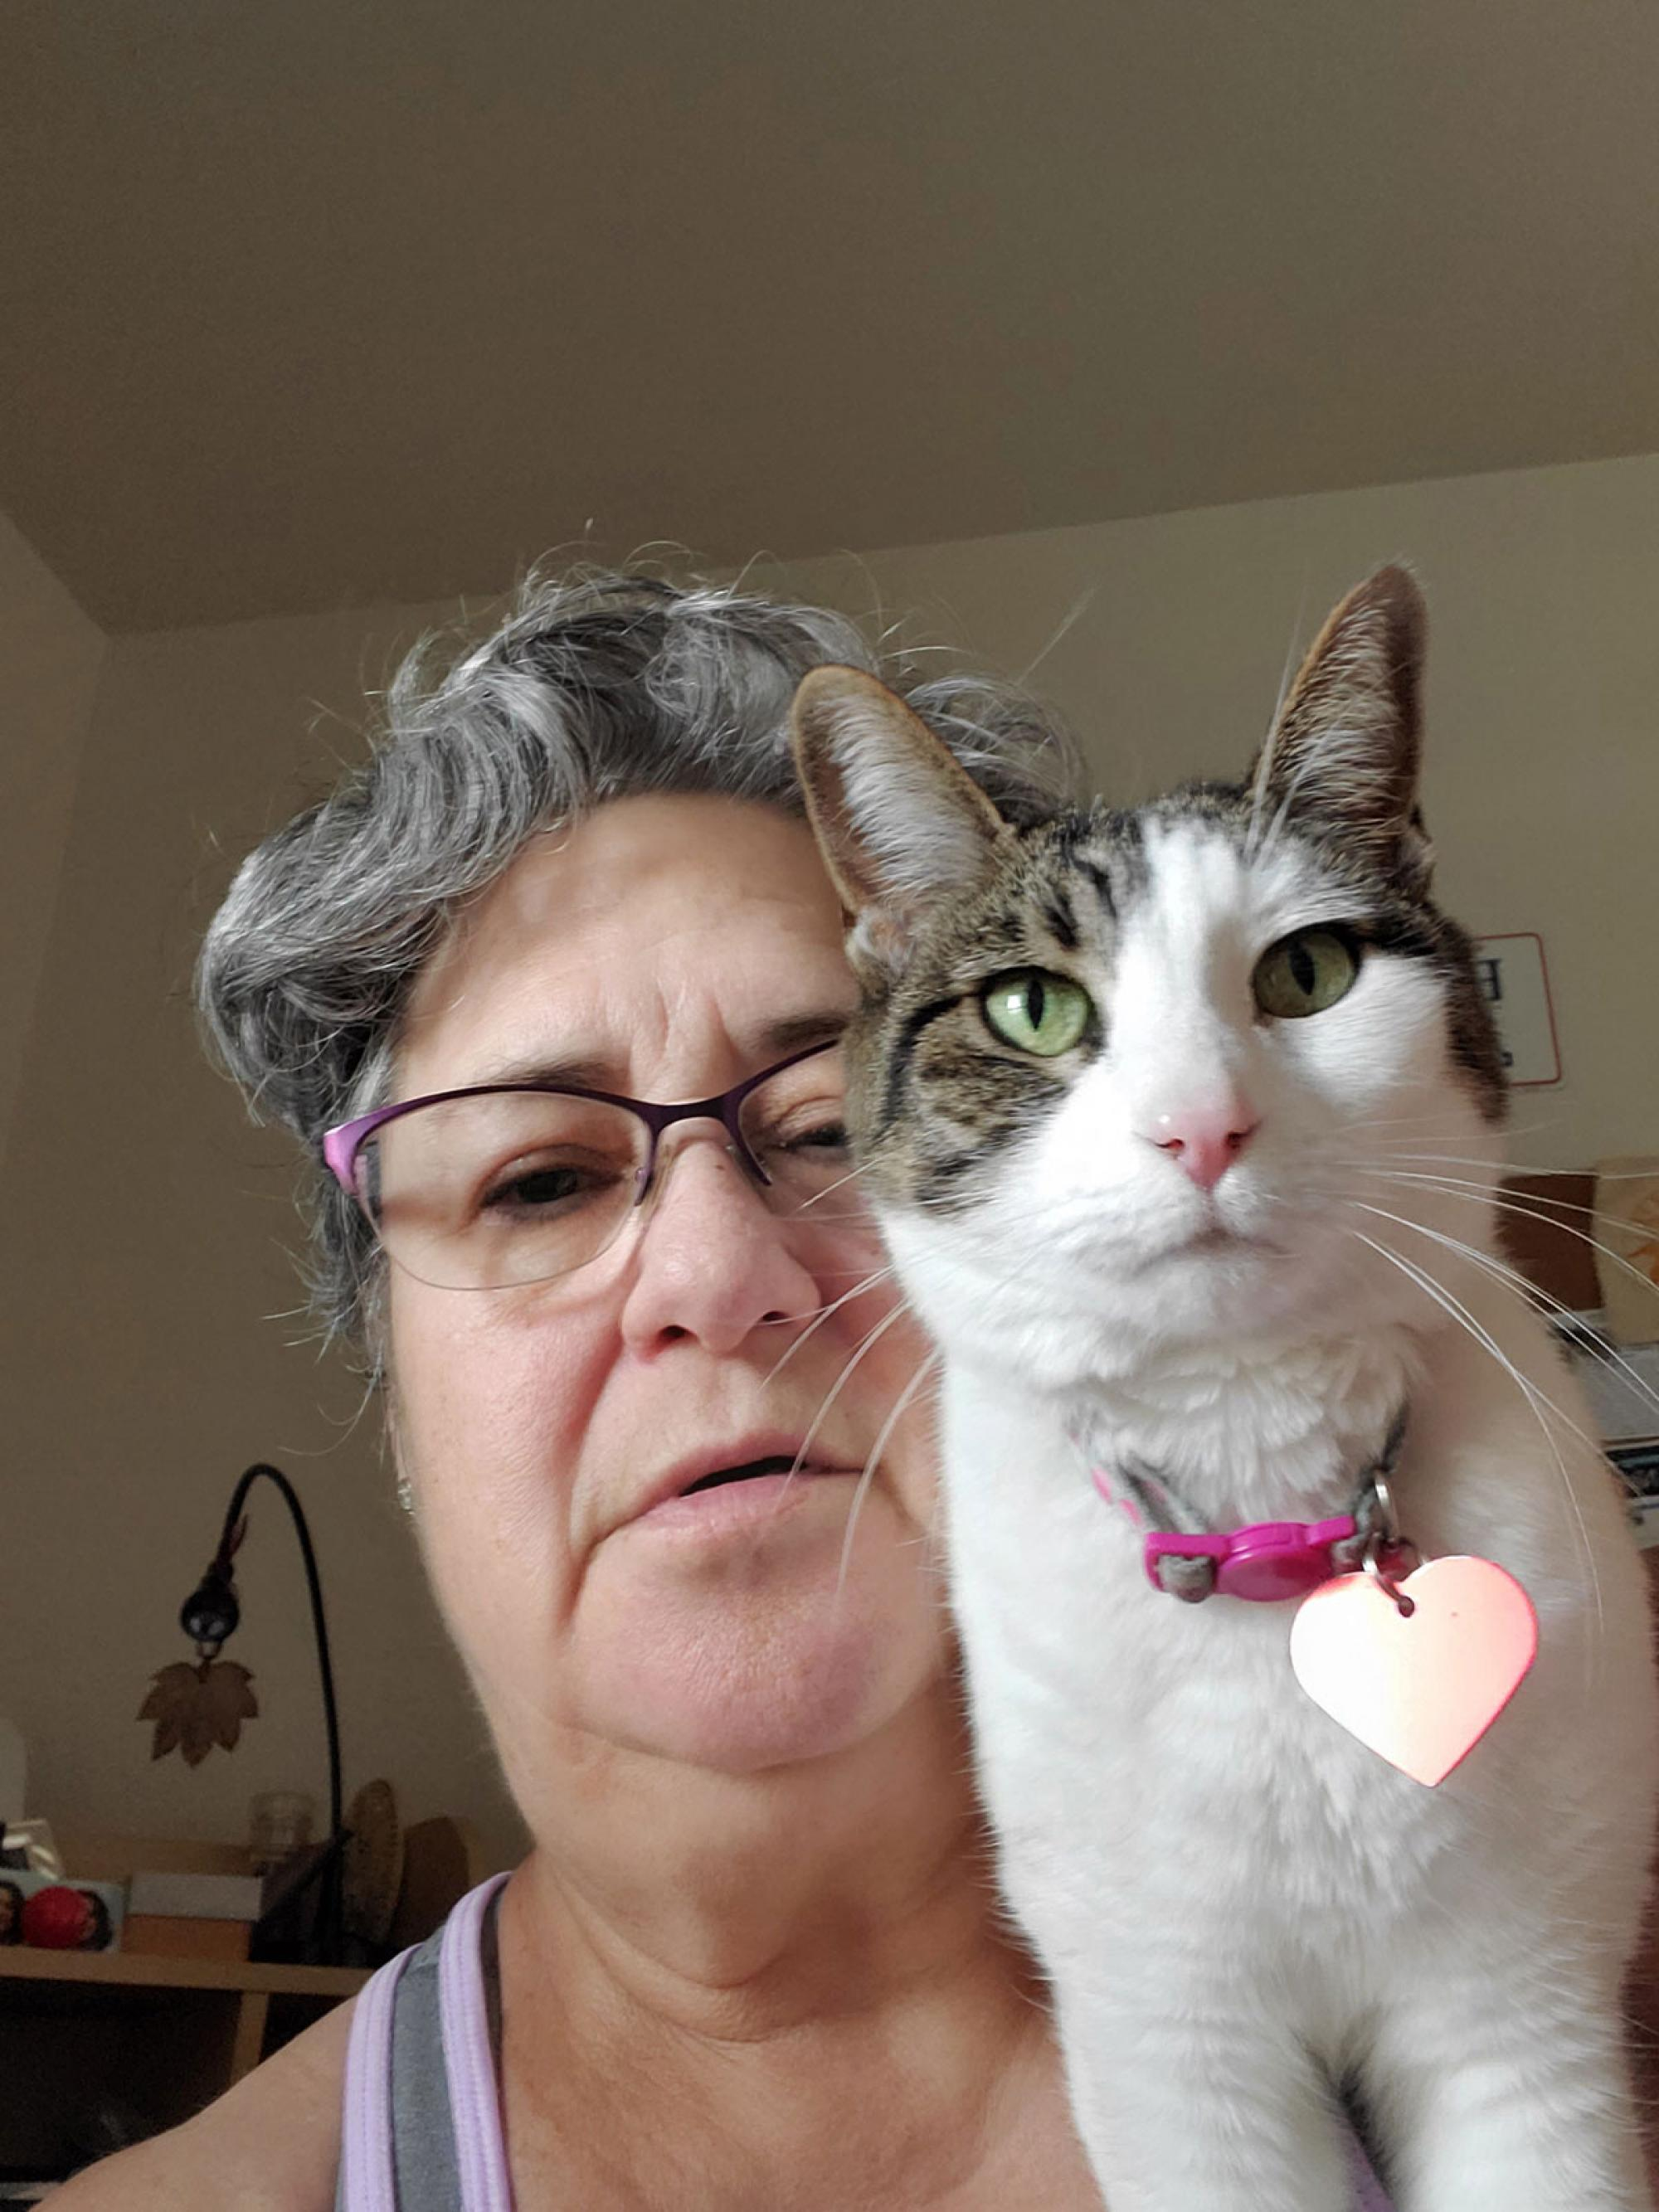 This is Logan and she loves to sit on my shoulder and drool while I am working from home. Here we are in my home office. She's pretty happy to have me around more. – Connie Bell, senior lab coordinator, Department of Nutritional Sciences